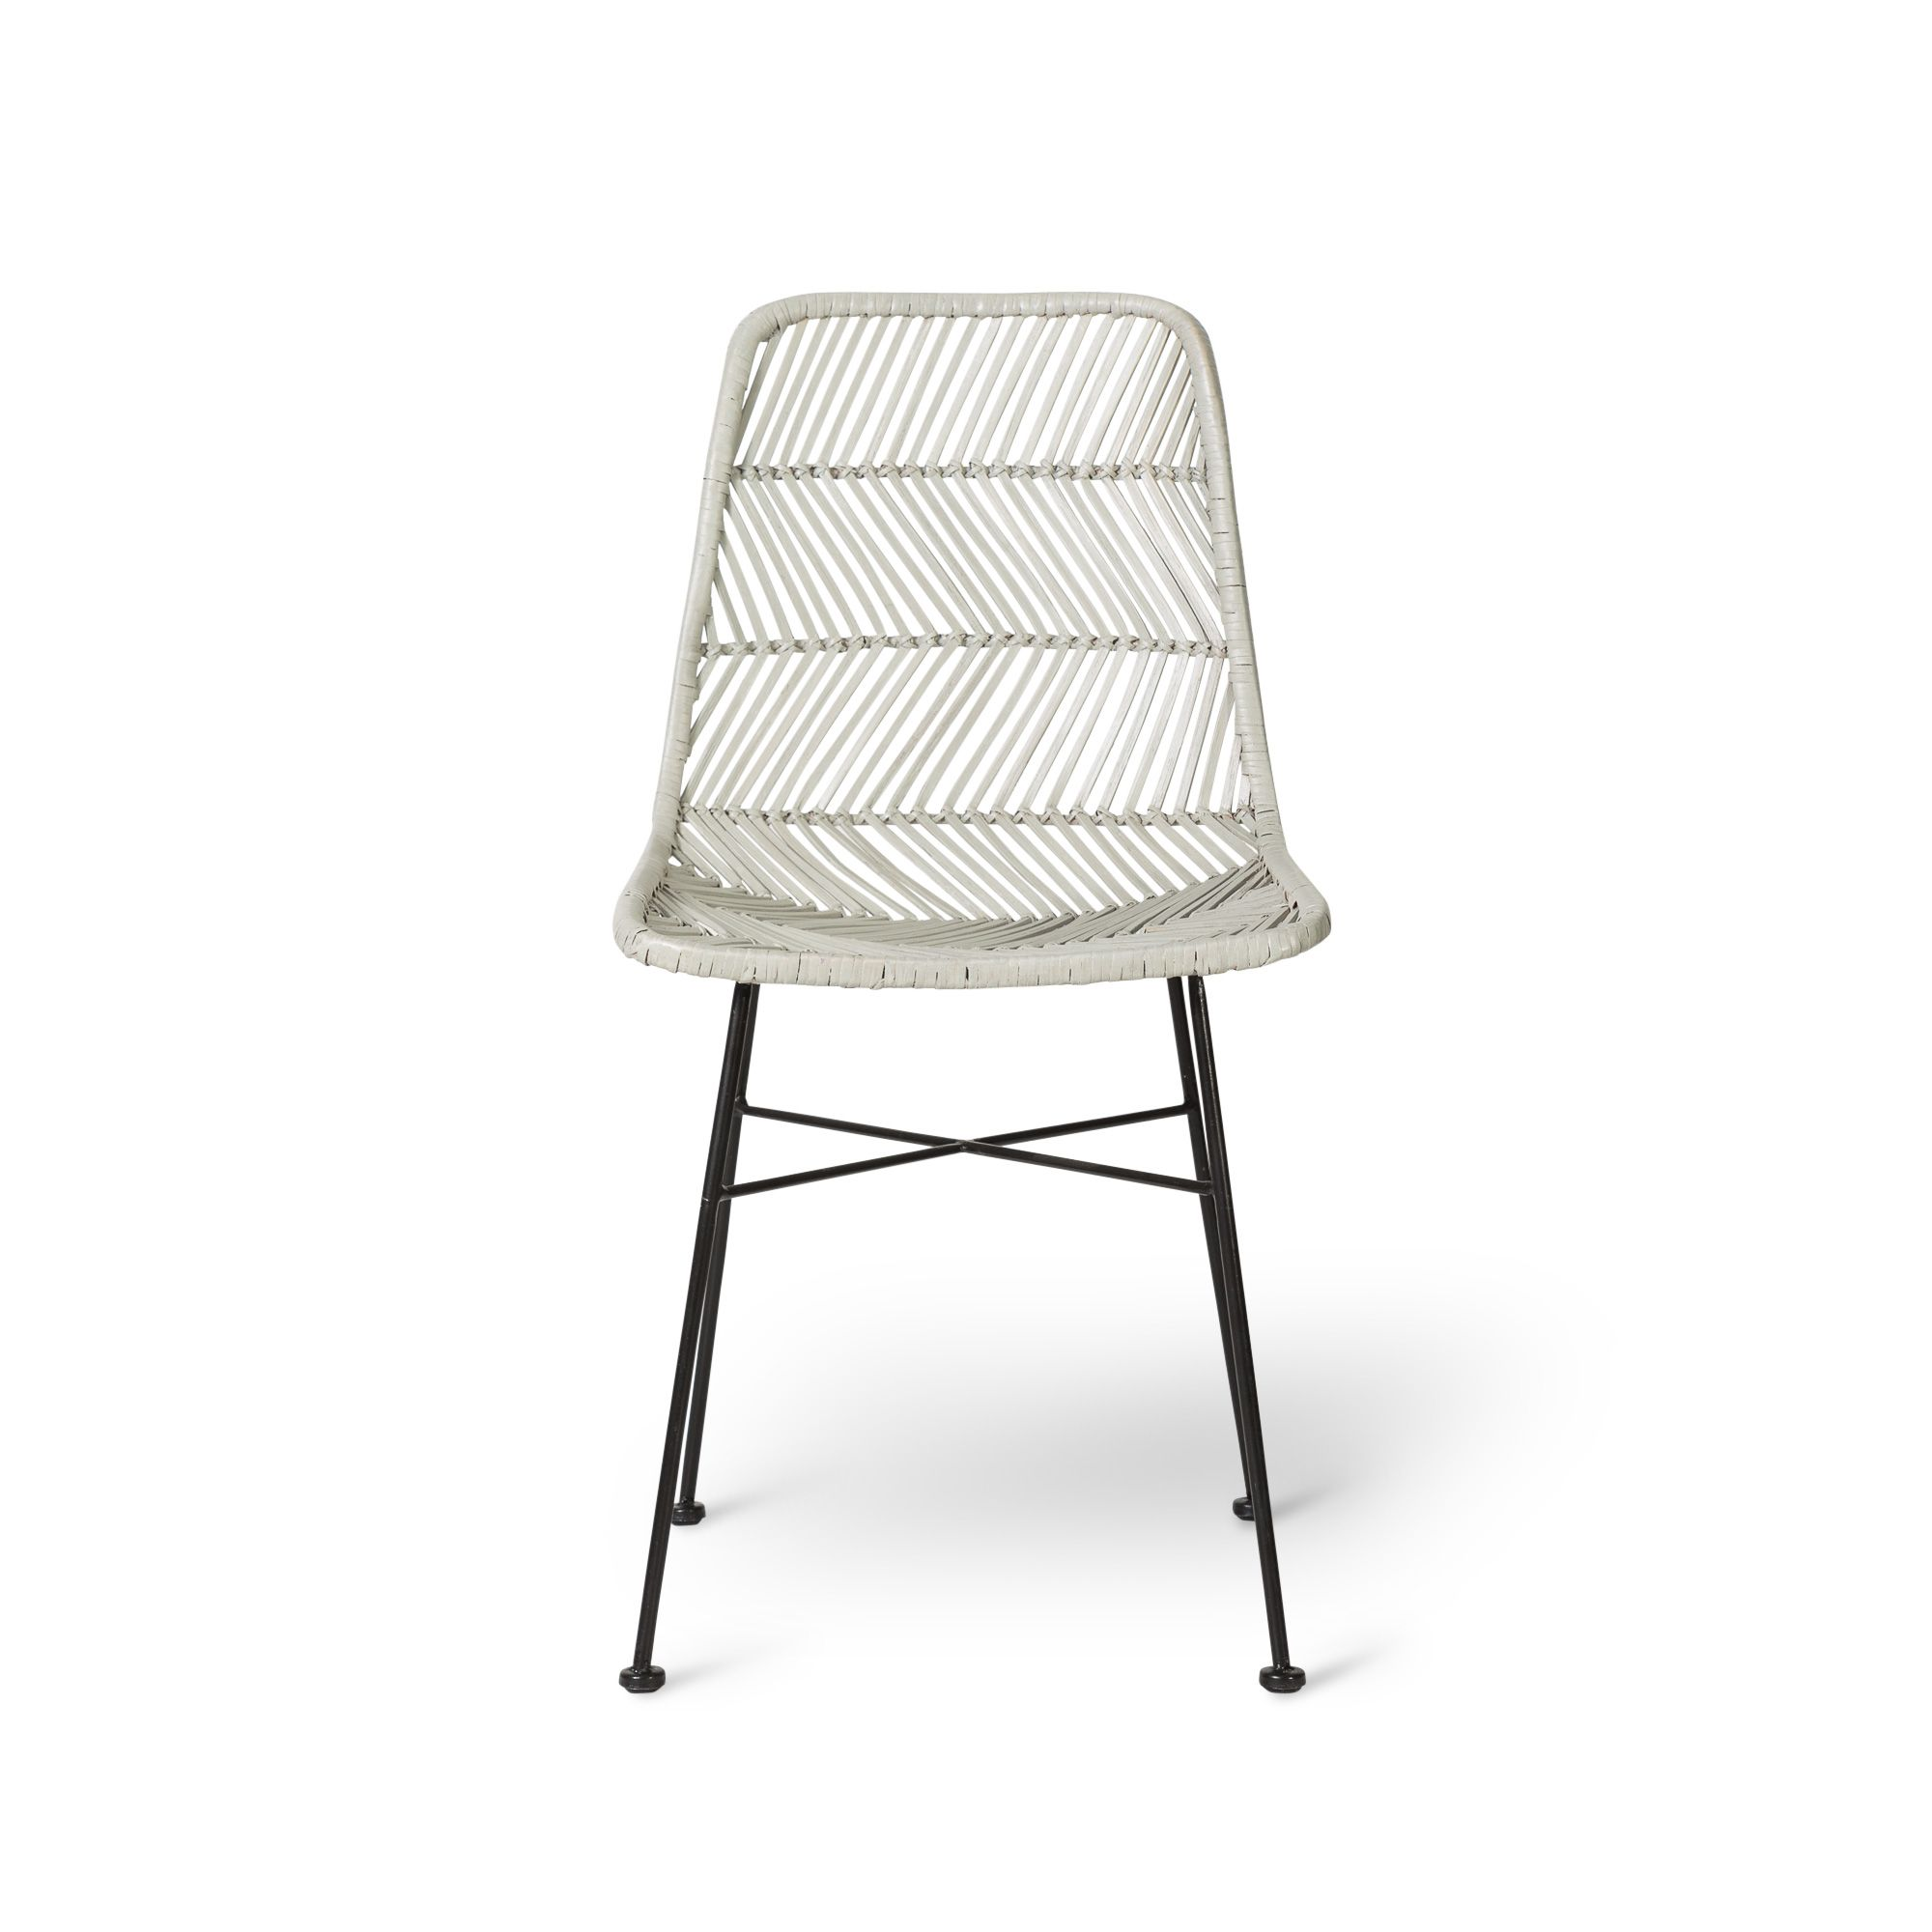 Buy the Grey Roro Rattan Chair at Oliver Bonas We deliver